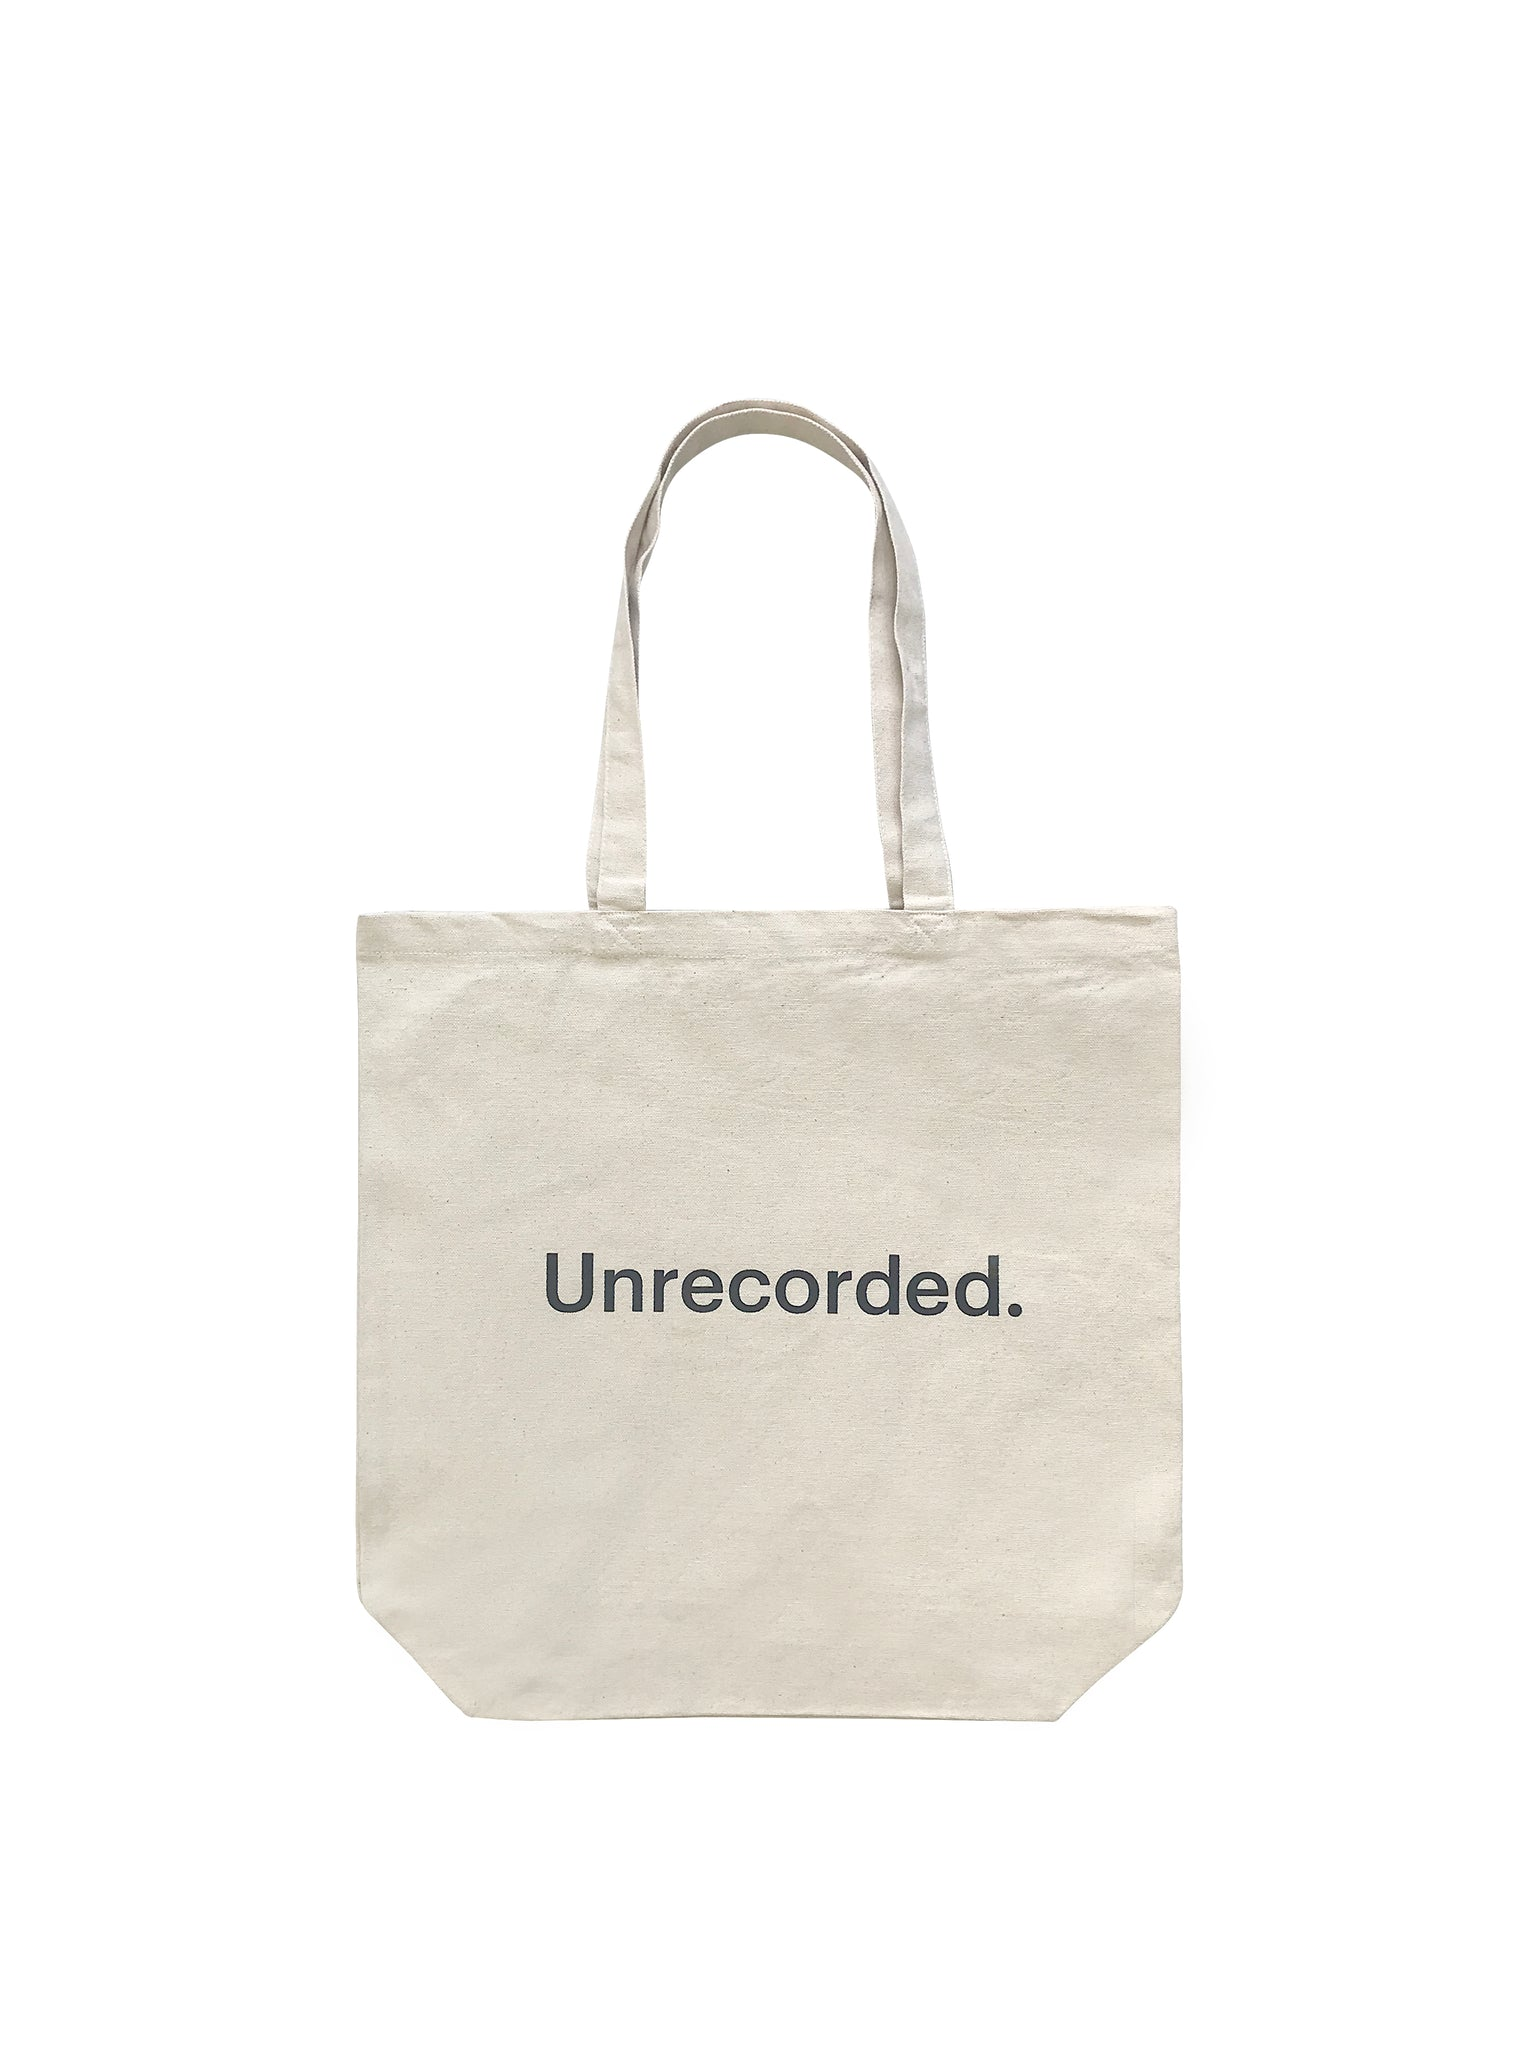 Tote Bag / 340 GSM - Unrecorded